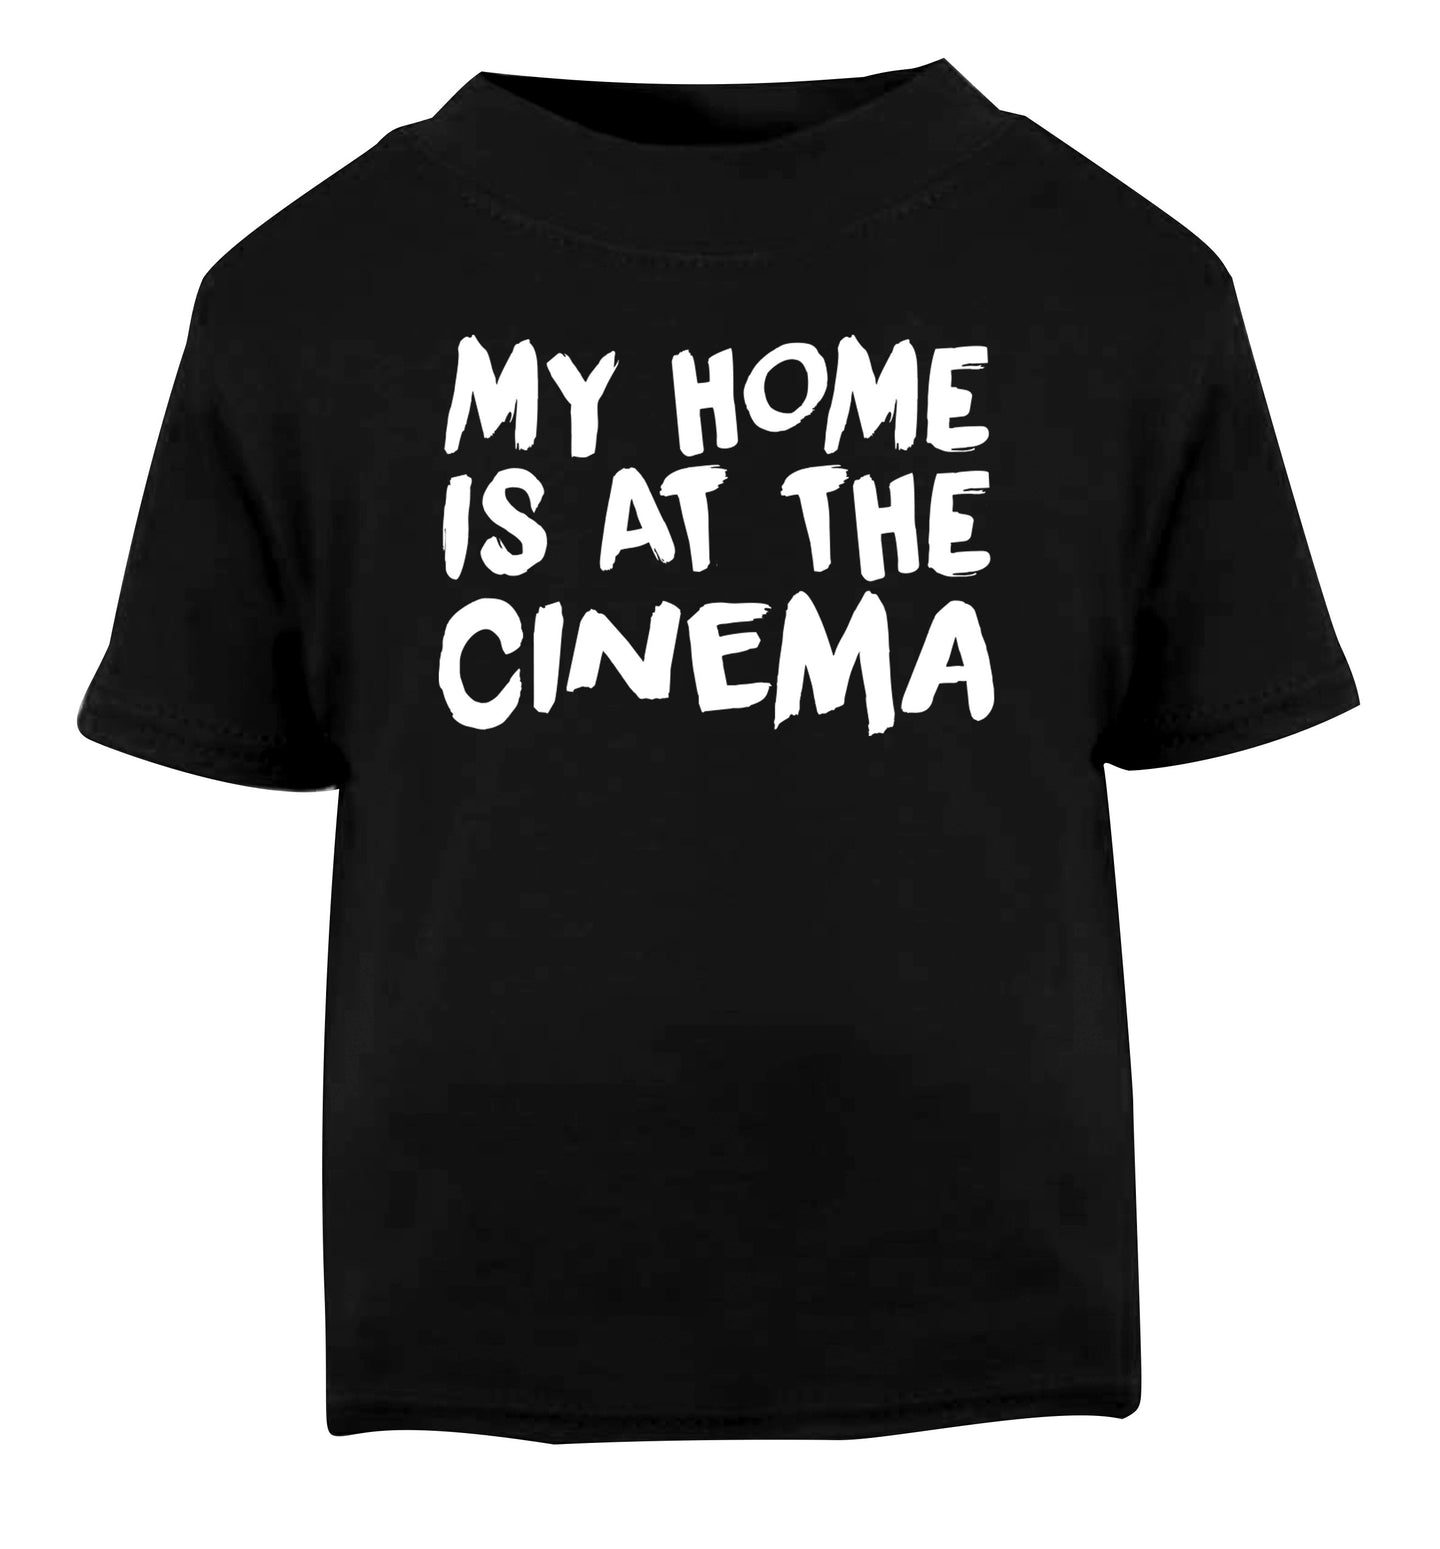 My home is at the cinema Black Baby Toddler Tshirt 2 years